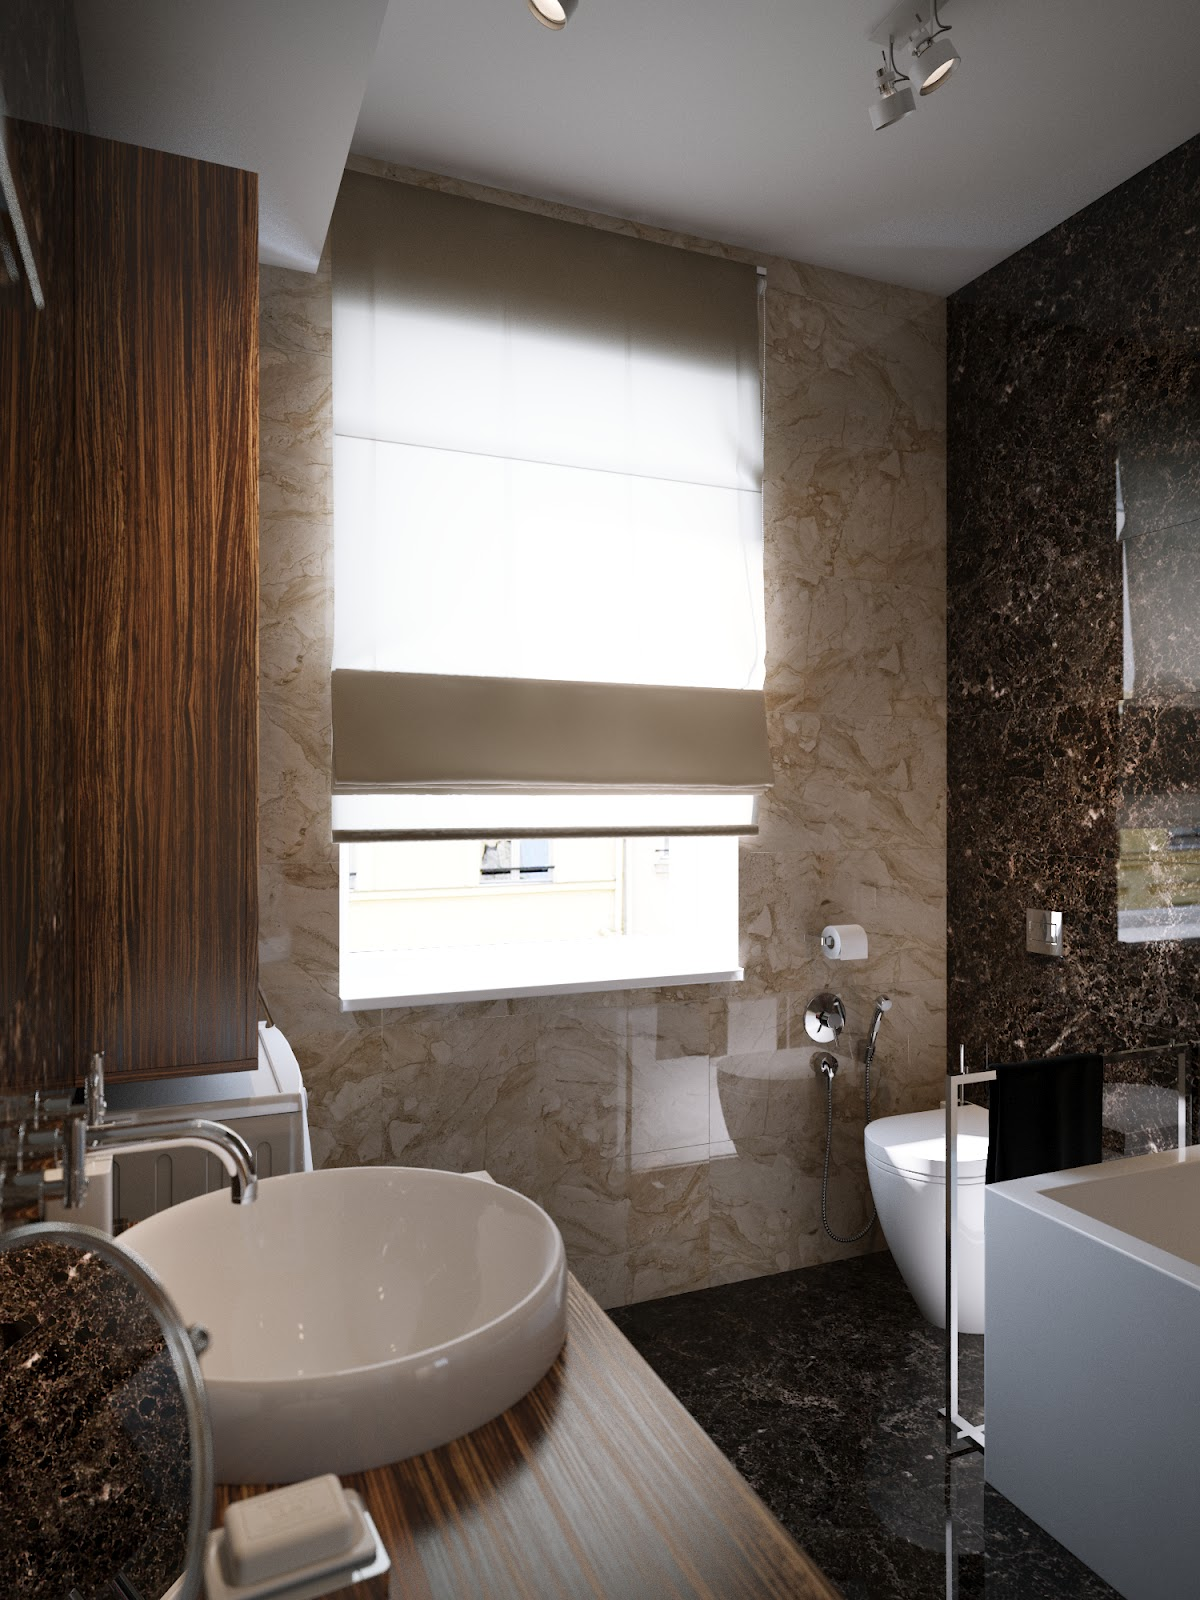 Modern bathroom design scheme interior design ideas for Bathroom design ideas modern